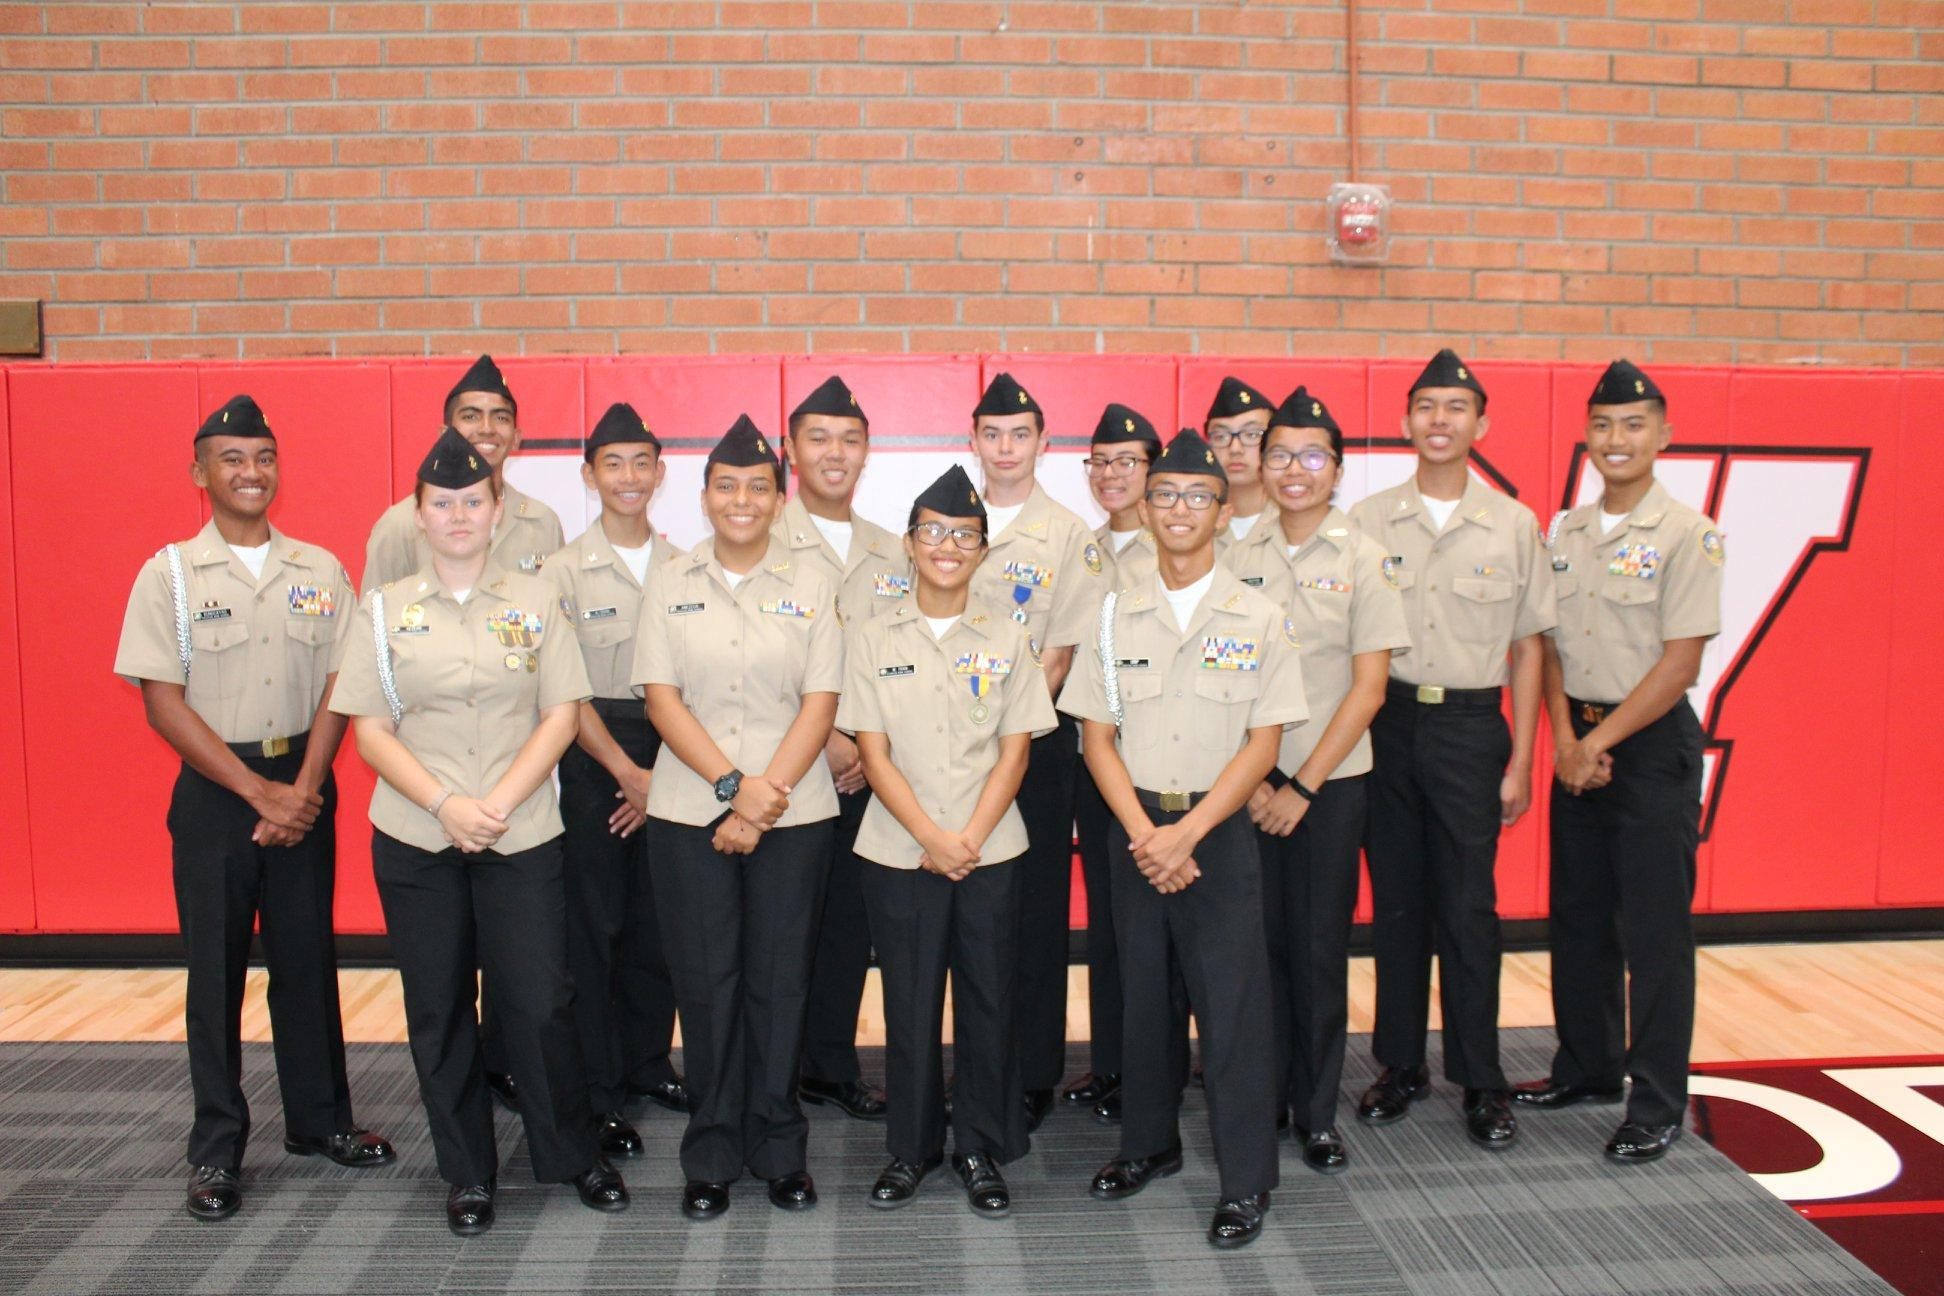 Welcome To The Pacifica High School Njrotc Njrotc Pacifica High